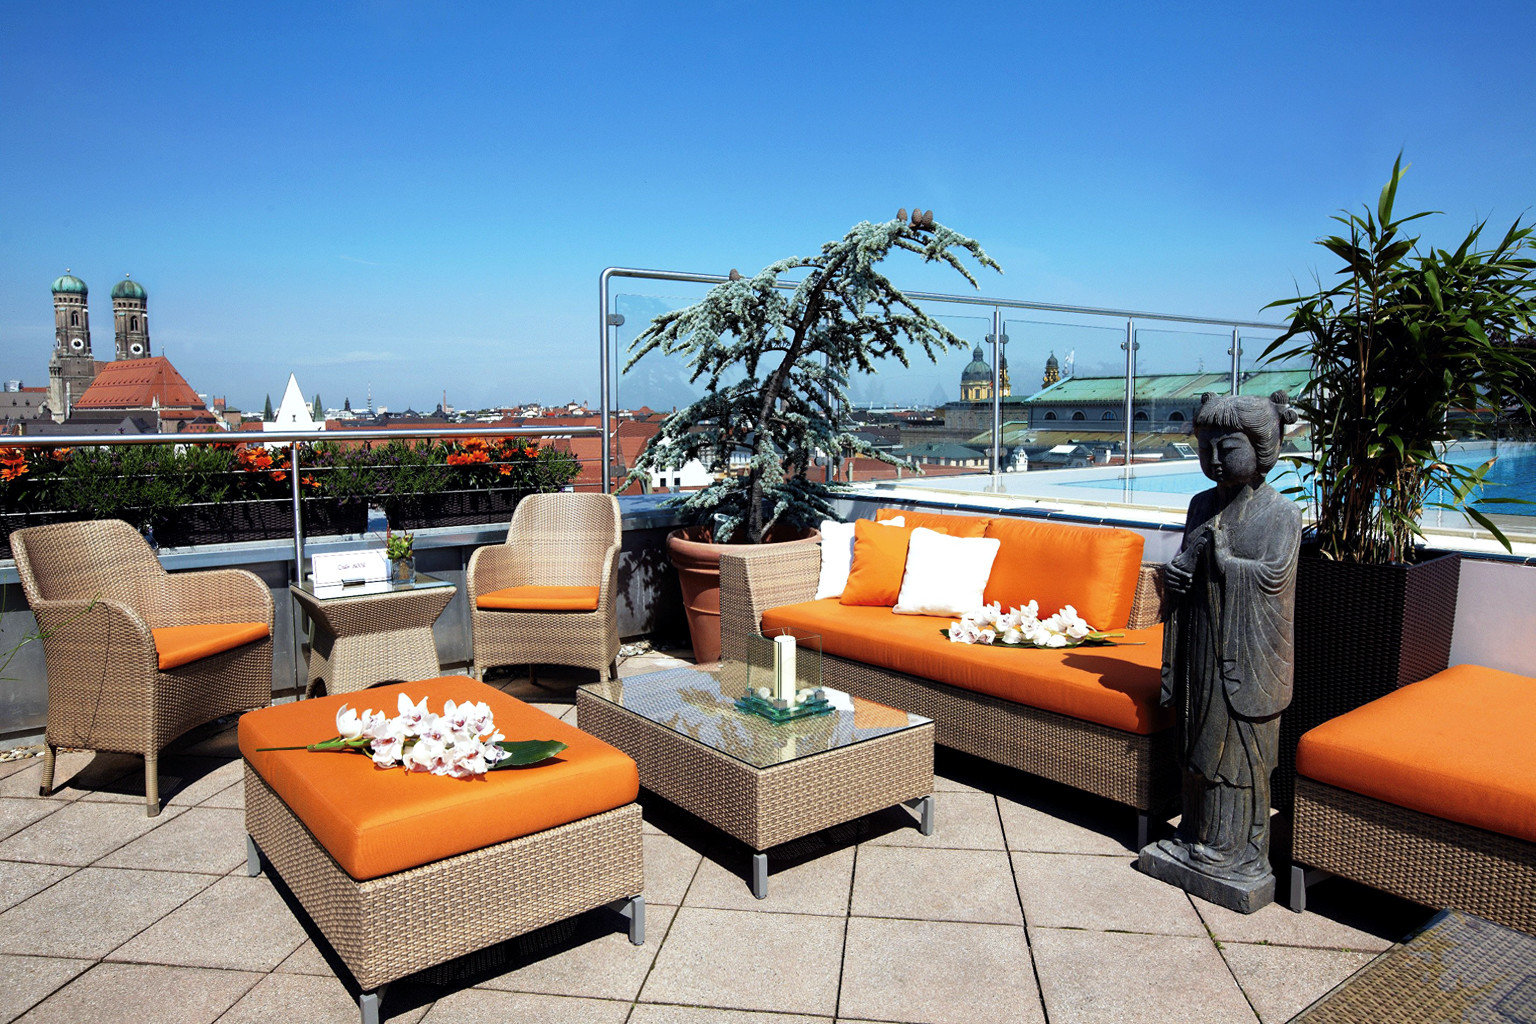 City Dining Drink Eat europe Germany Hotels Luxury Munich Nightlife Rooftop Scenic views sky outdoor leisure property vacation estate Resort home real estate Villa orange living room condominium apartment